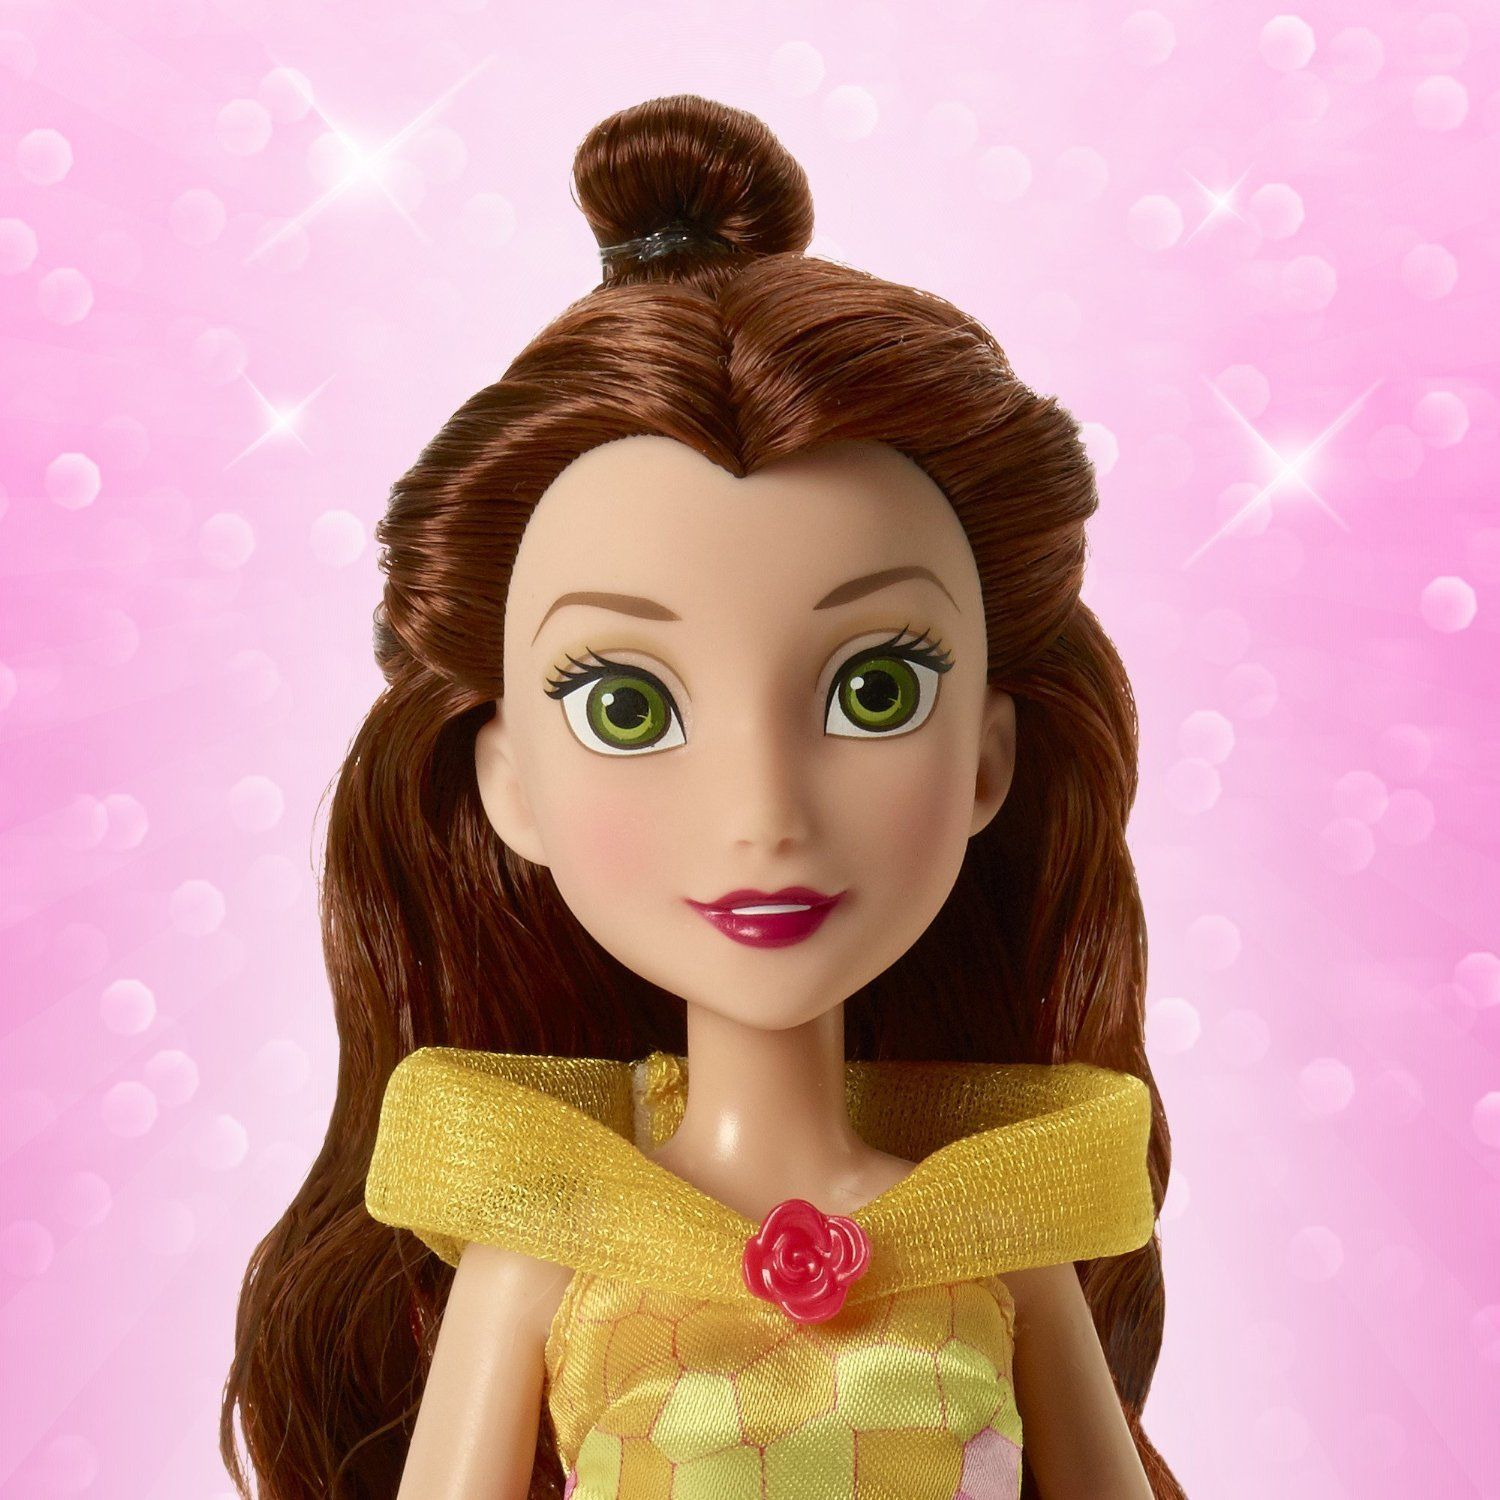 Image 3 of Disney Princess Belle's Magical Story Skirt Doll in Fuchsia/Yellow by Hasbro